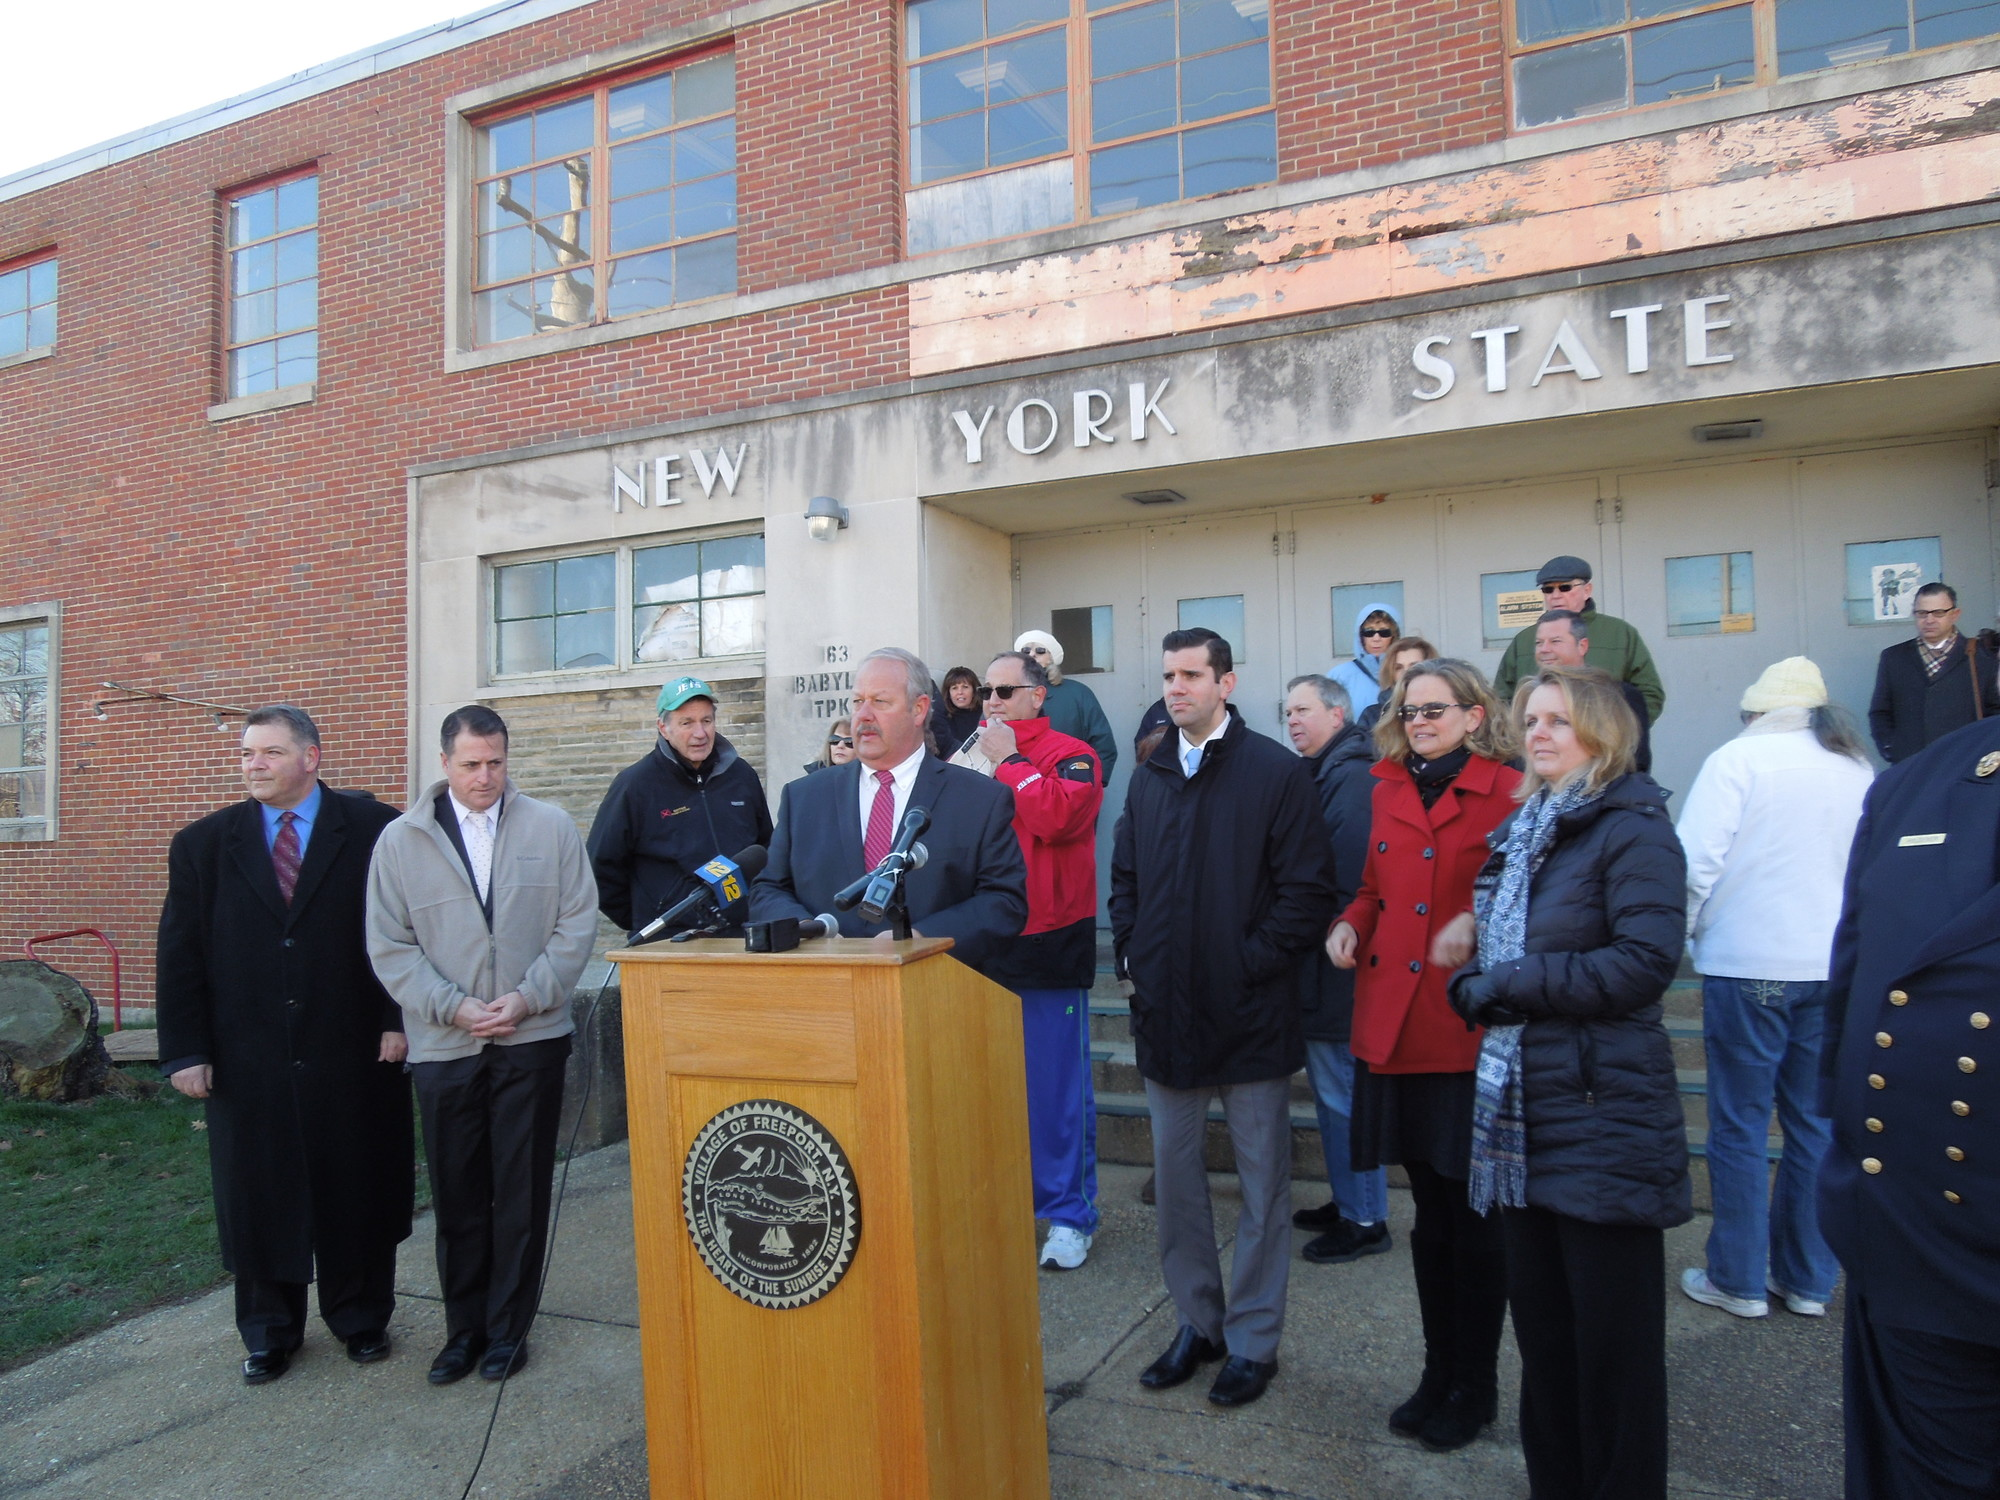 Mayor Robert Kennedy, at lectern, was joined by local and state officials on Jan. 11 to urge the governor to transfer the armory to the village for use by the Department of Public Works